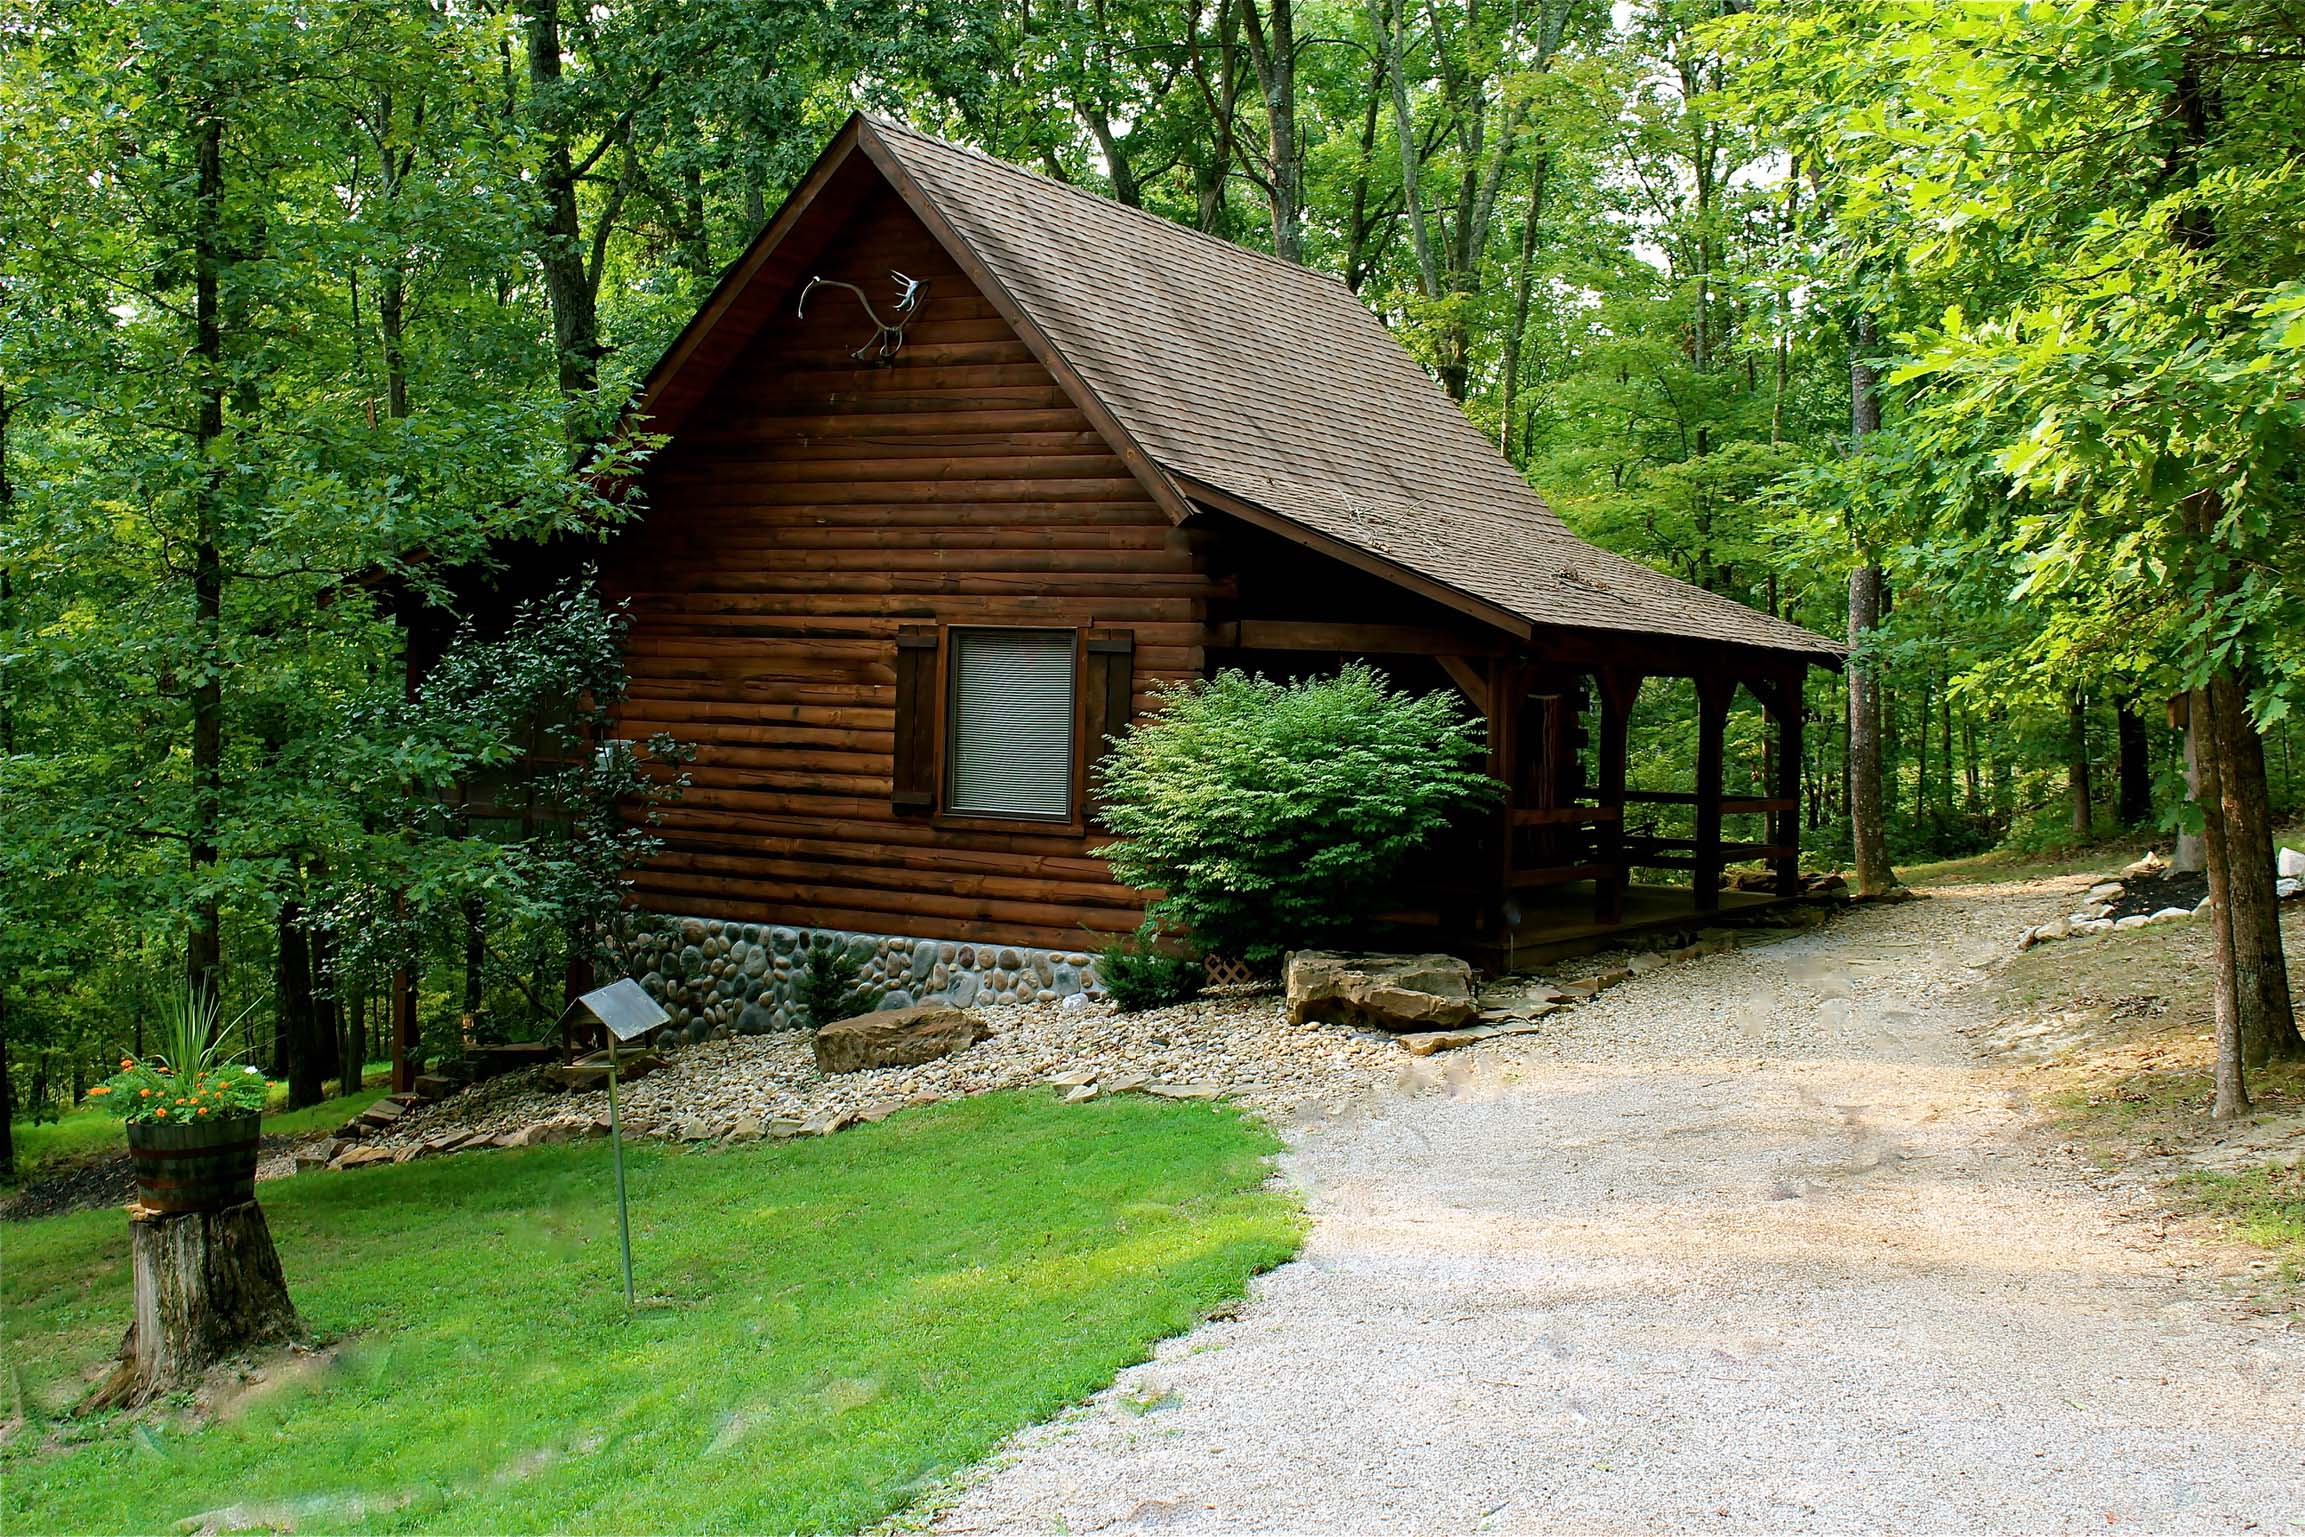 The Cardinal Cabin - This extraordinary log cabin is surrounded by lush woods and wildlife and located on a scenic and quiet country road.  A nearby fire ring is stock with free firewood for your convenience.